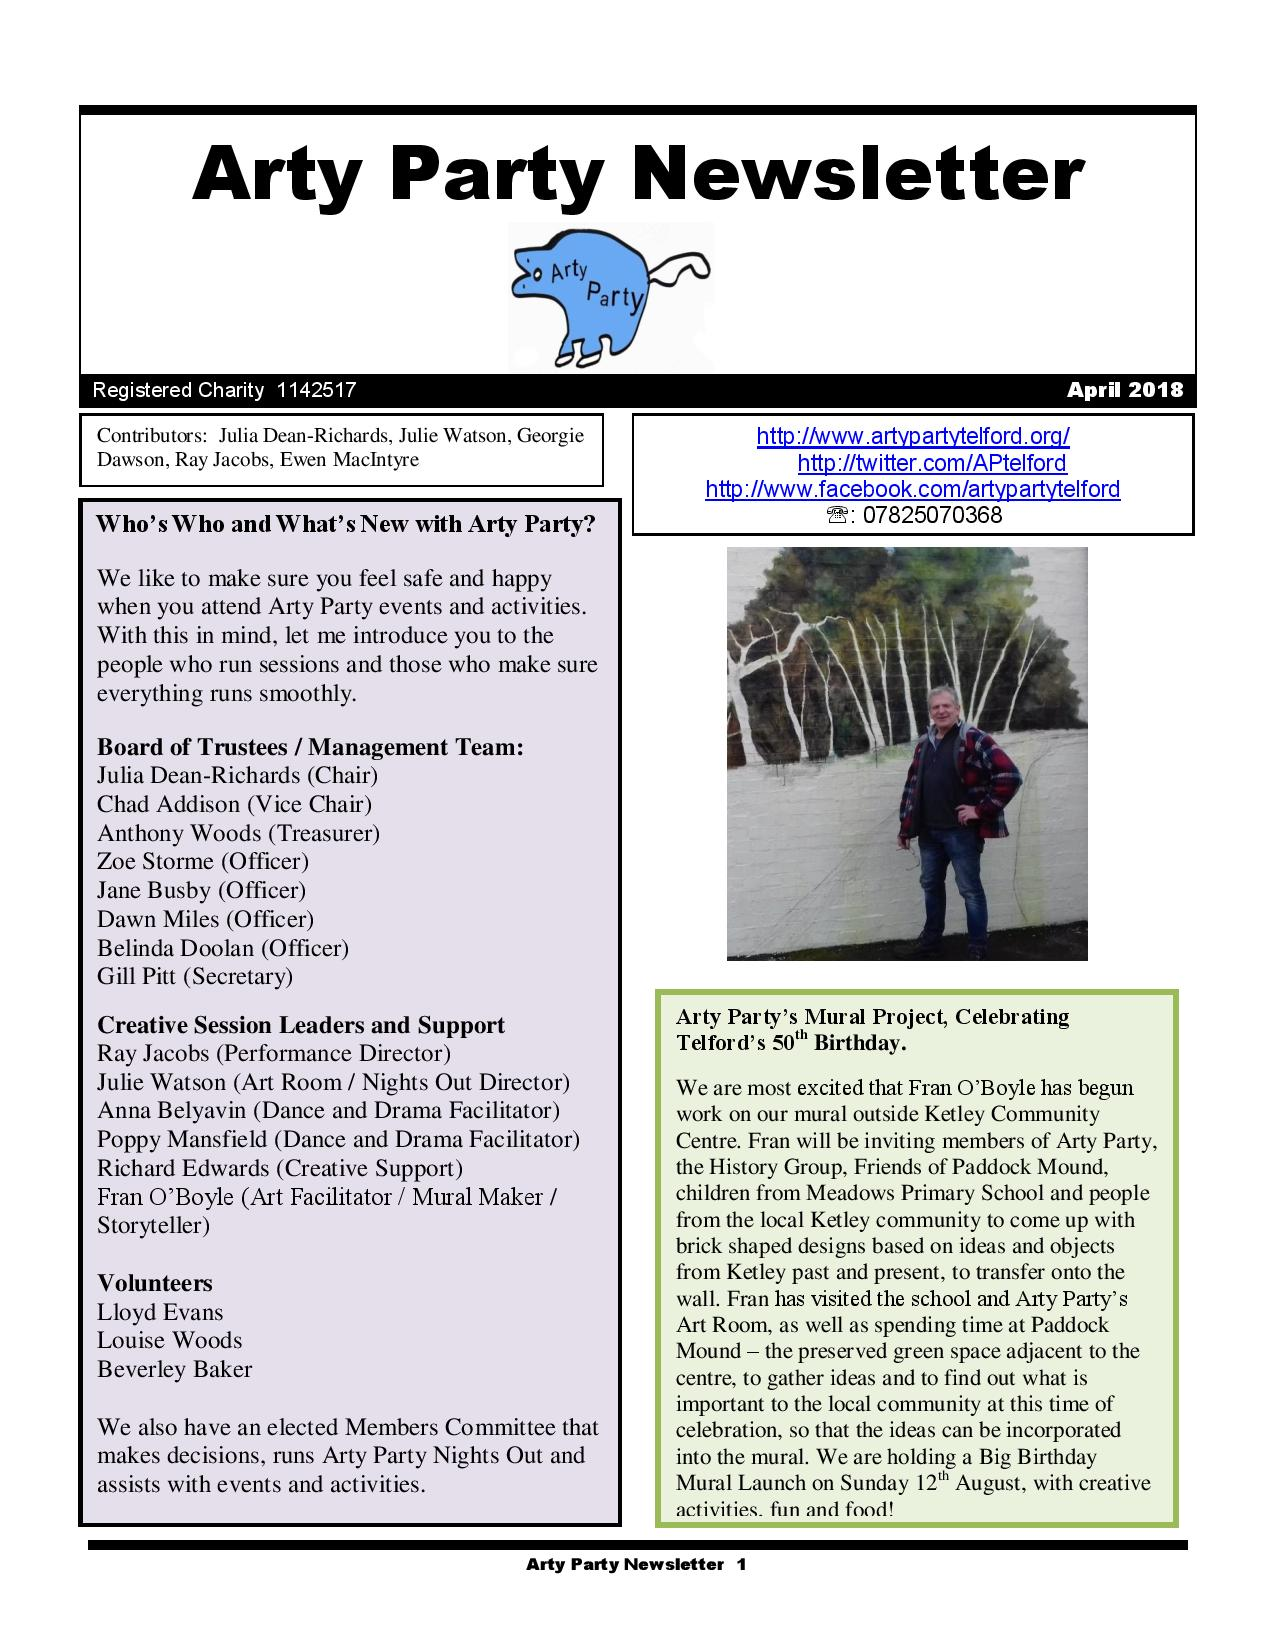 Arty Party Newsletter 190418-page-001